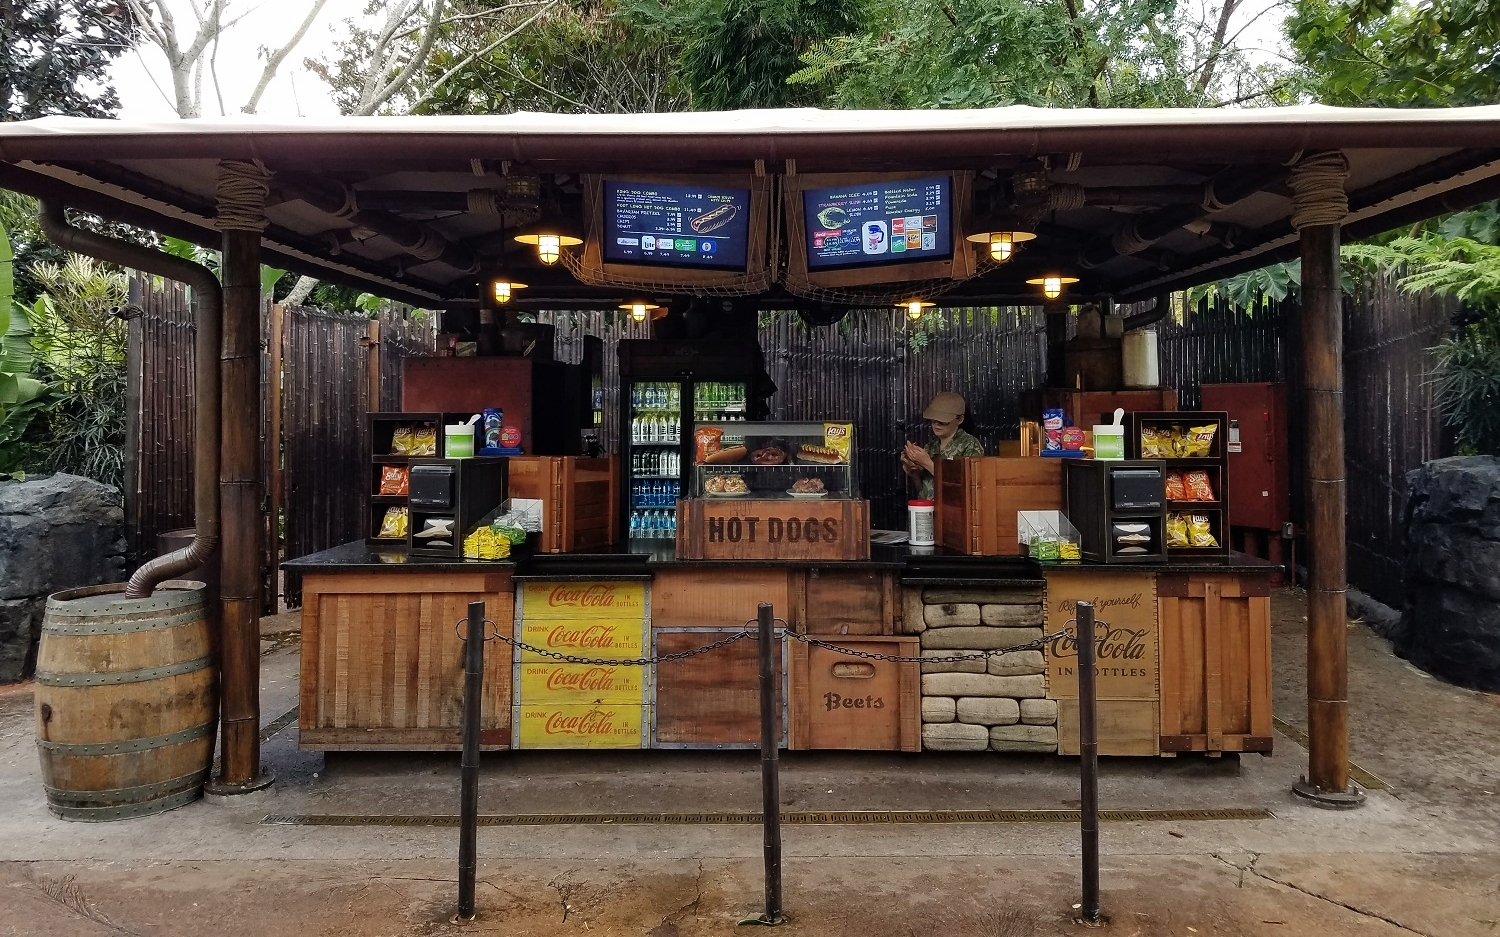 The Mess Tent in Skull Island: Reign of Kong in Islands of Adventure